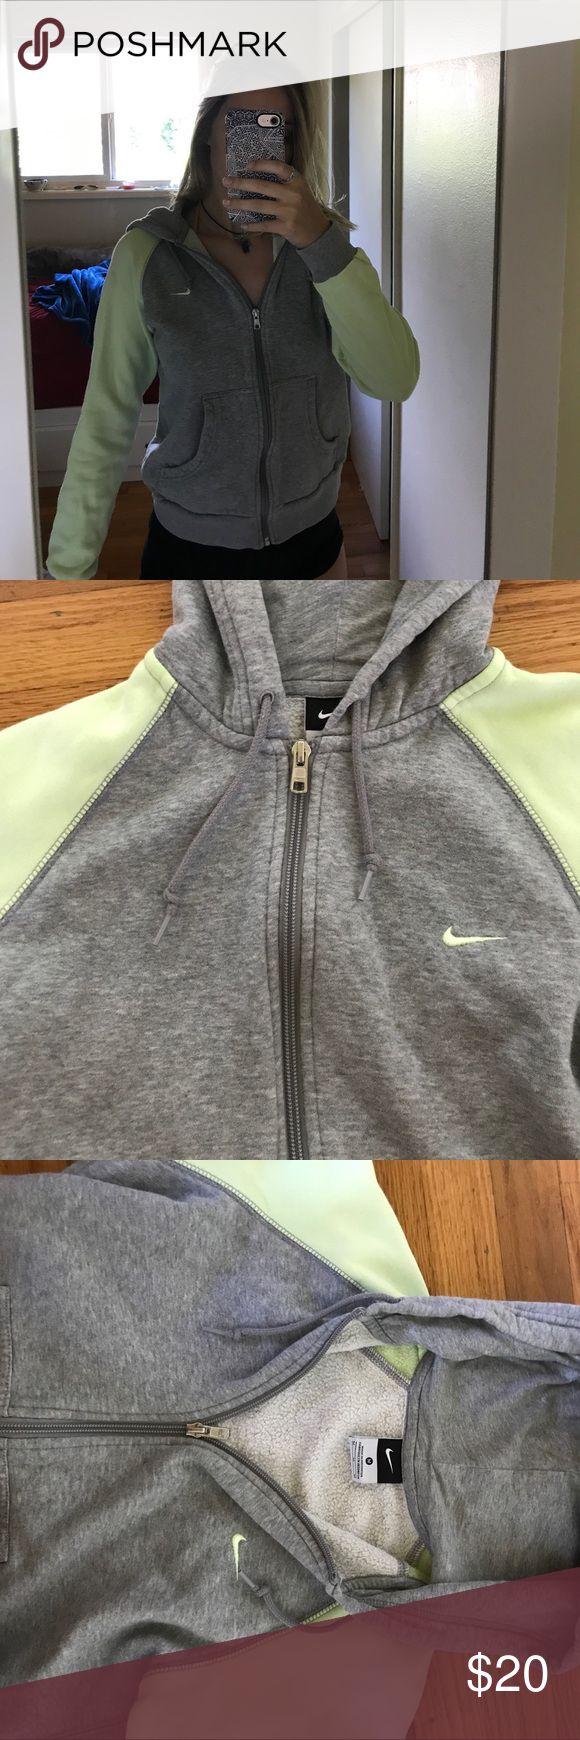 vintage Nike zip up Super cute nike zip up sweatshirt. Light grey and a faded lime green. Really cute and comfortable! Nike Jackets & Coats